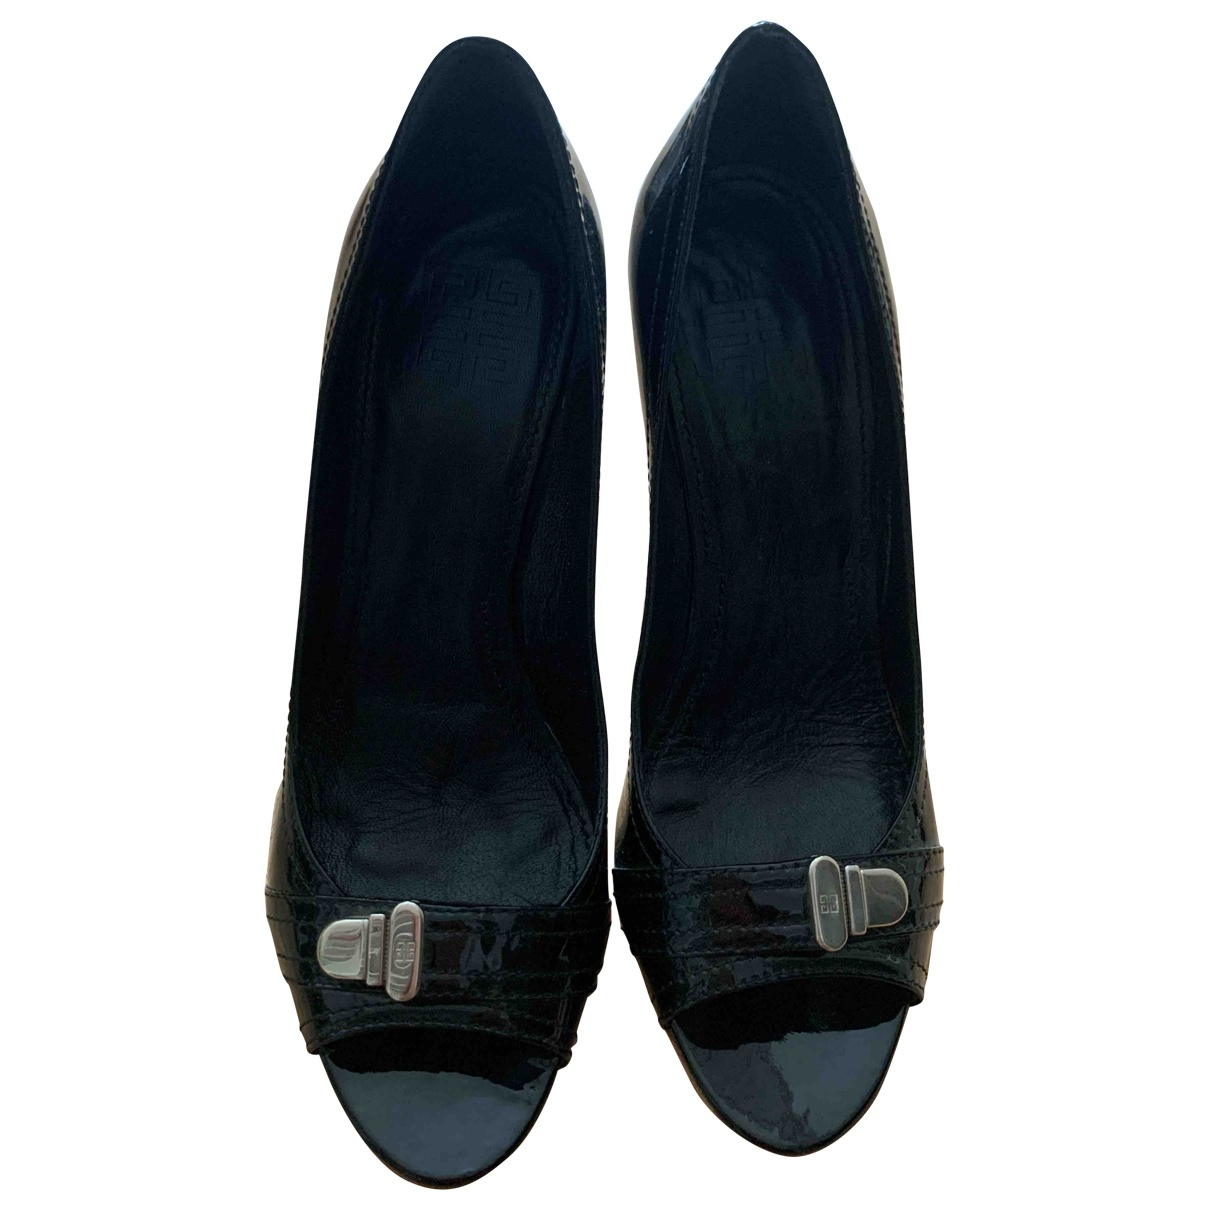 Givenchy \N Black Patent leather Heels for Women 40.5 EU